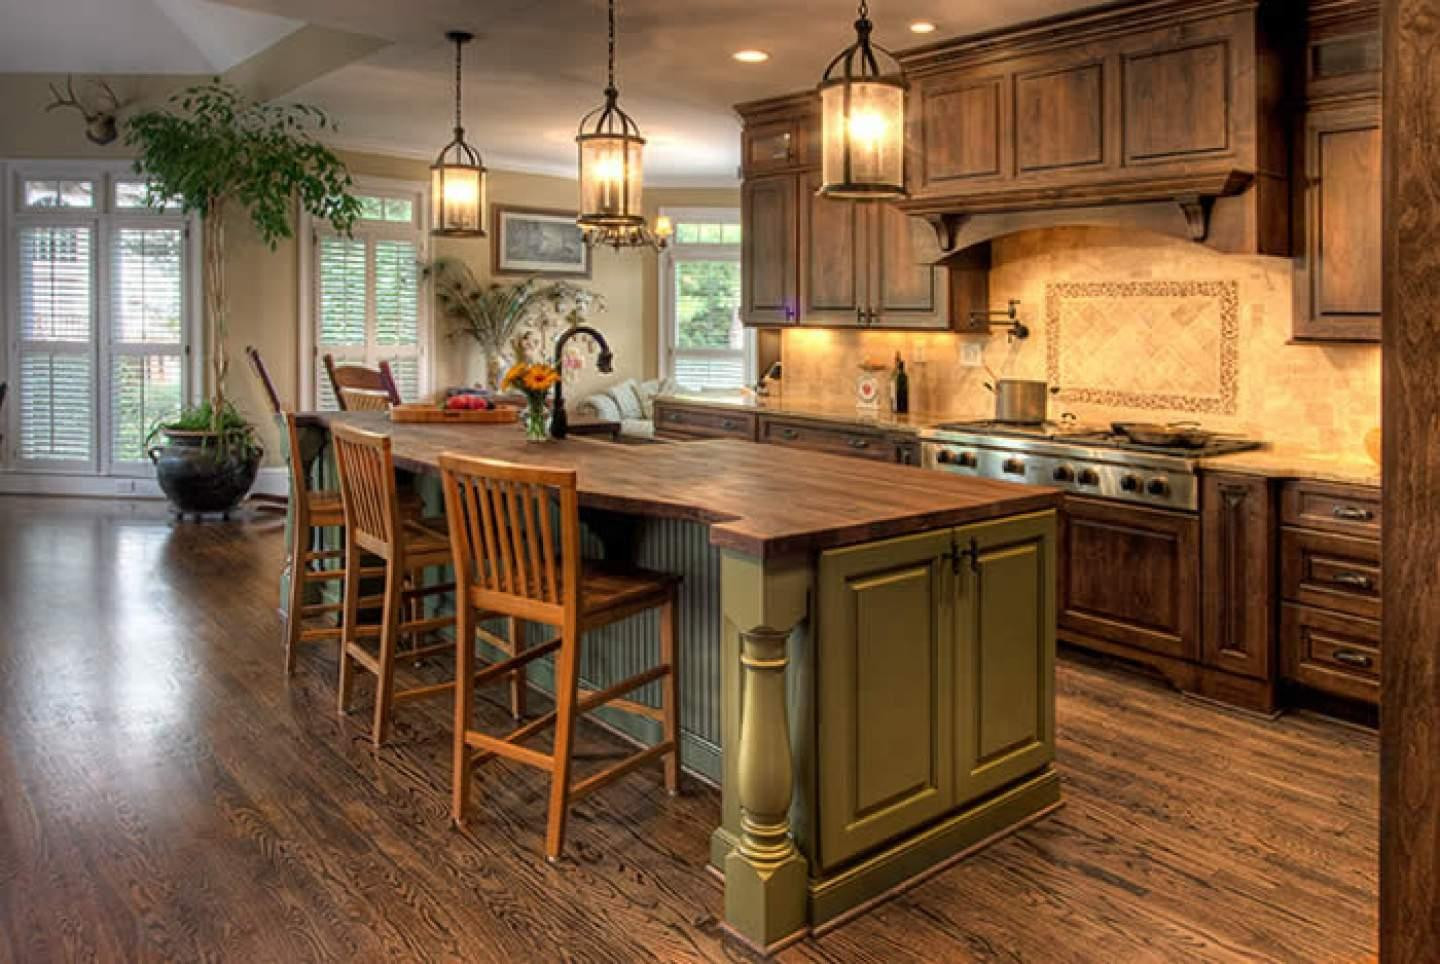 hardwood floors in kitchen pros and cons of lovely kitchens with hardwood floors and wood cabinets inspiration throughout interior extraordinaryod floors in kitchen problems laminate flooring pros and cons with cabinets wood floors